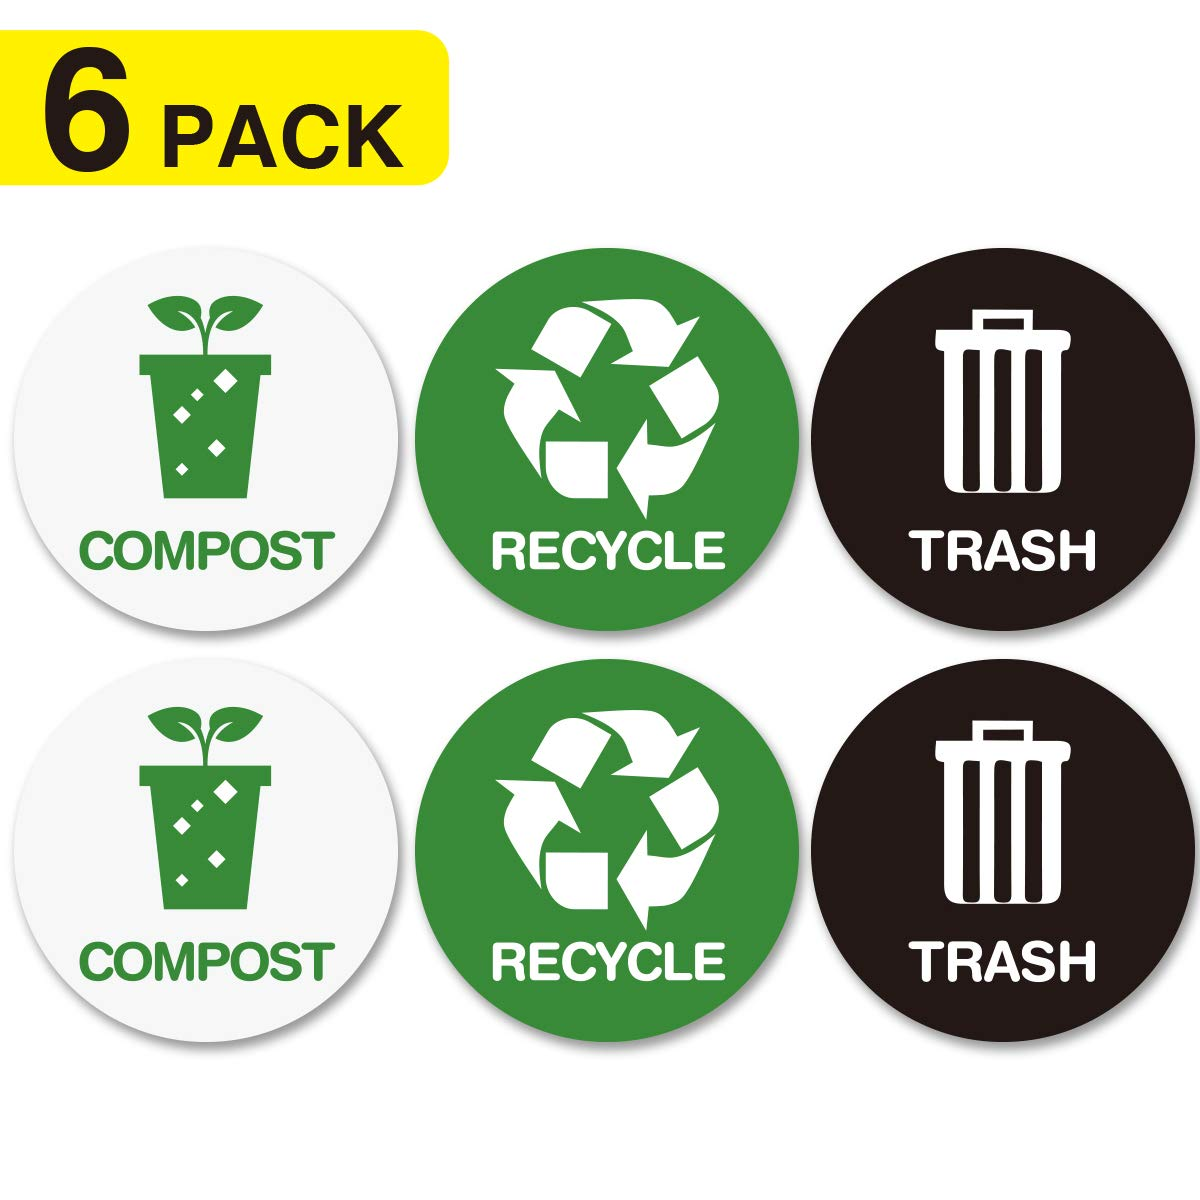 Recycle and trash bin logo stickers recycle sticker trash compost can organize trash for metal or plastic garbage cans containers and bins indoor